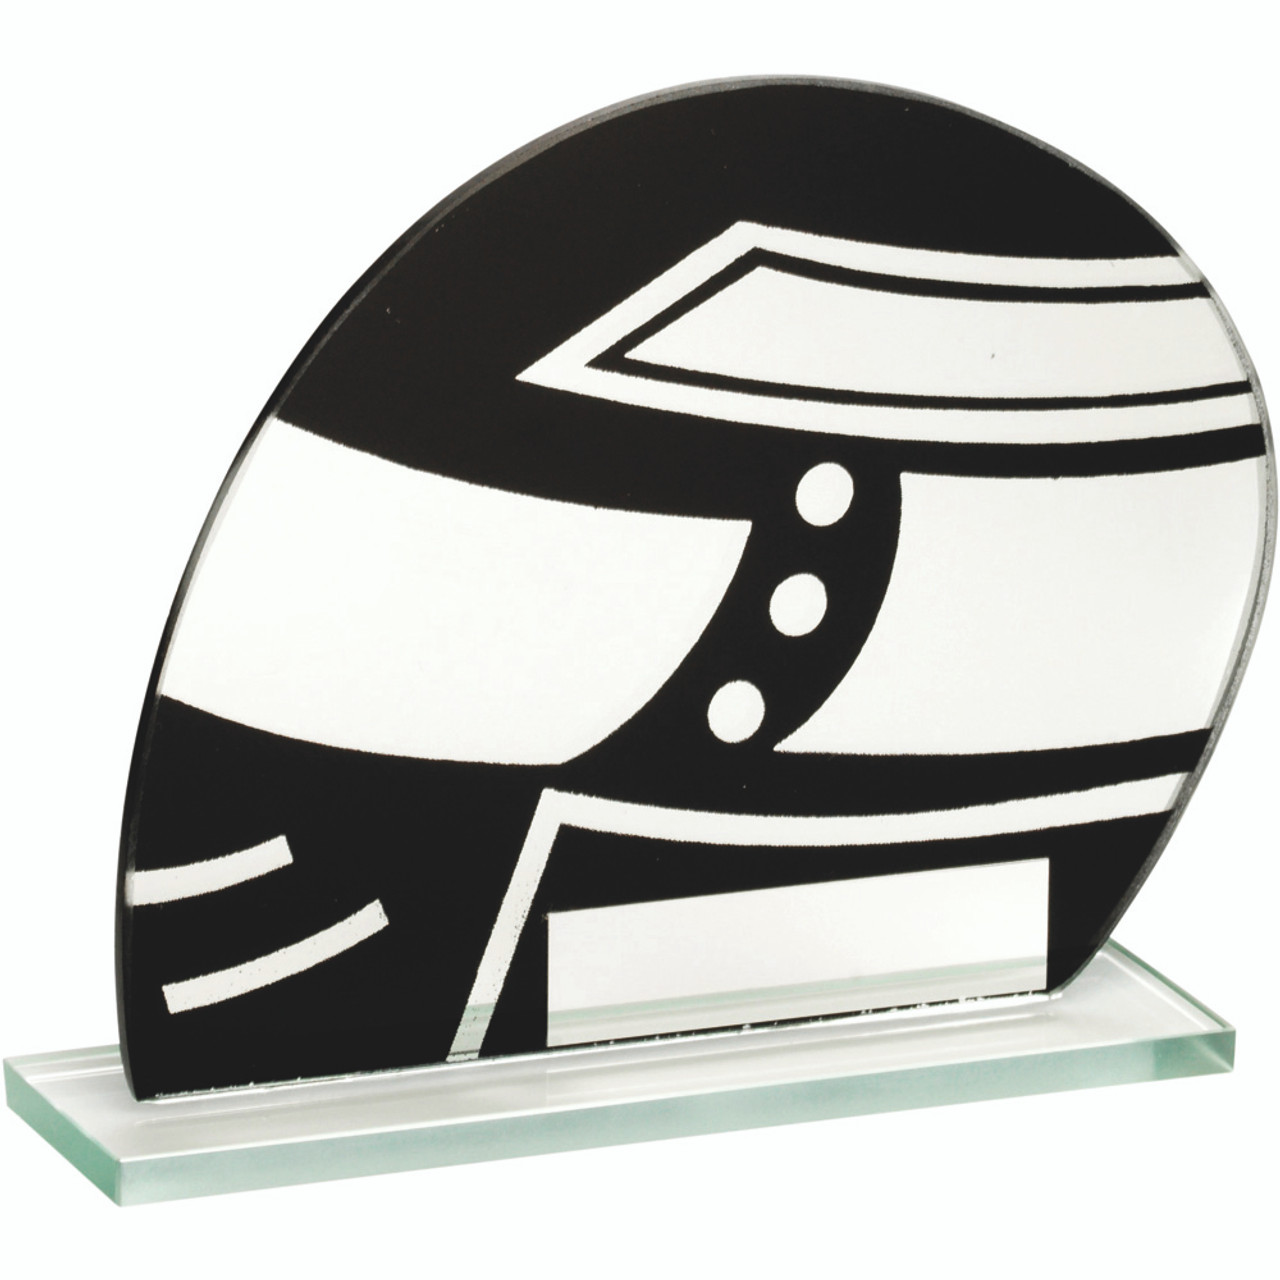 Black and silver glass motorsport award available in 3 sizes and with FREE personalised engraving.